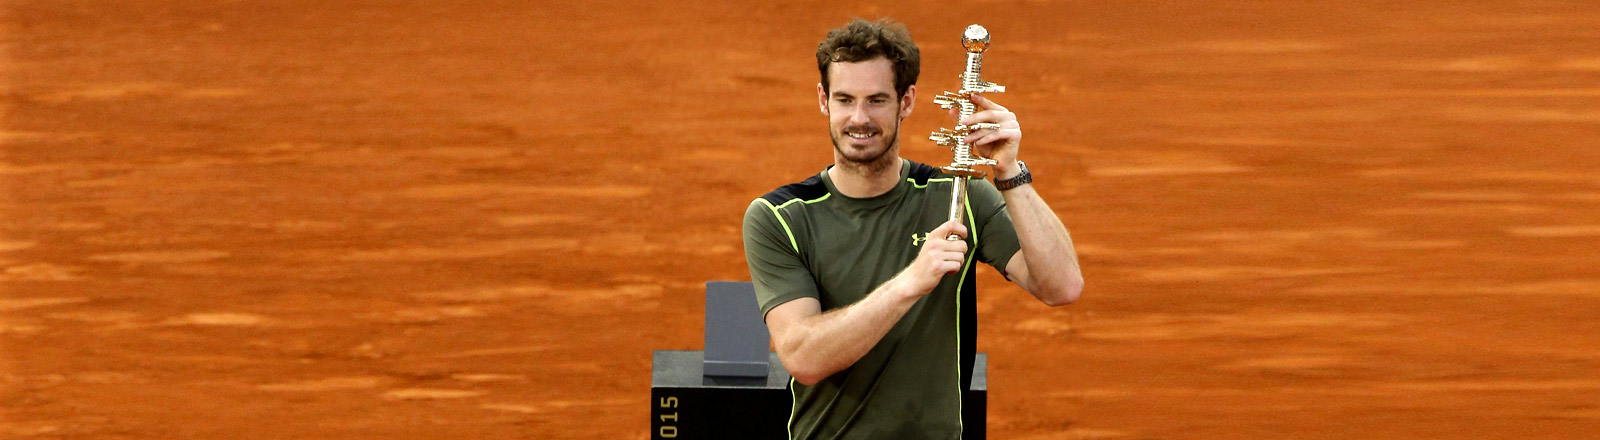 Tennis-Profi Andy Murray hält den Pokal des Sandplatz-Turniers in Madrid im Mai 2015 hoch.